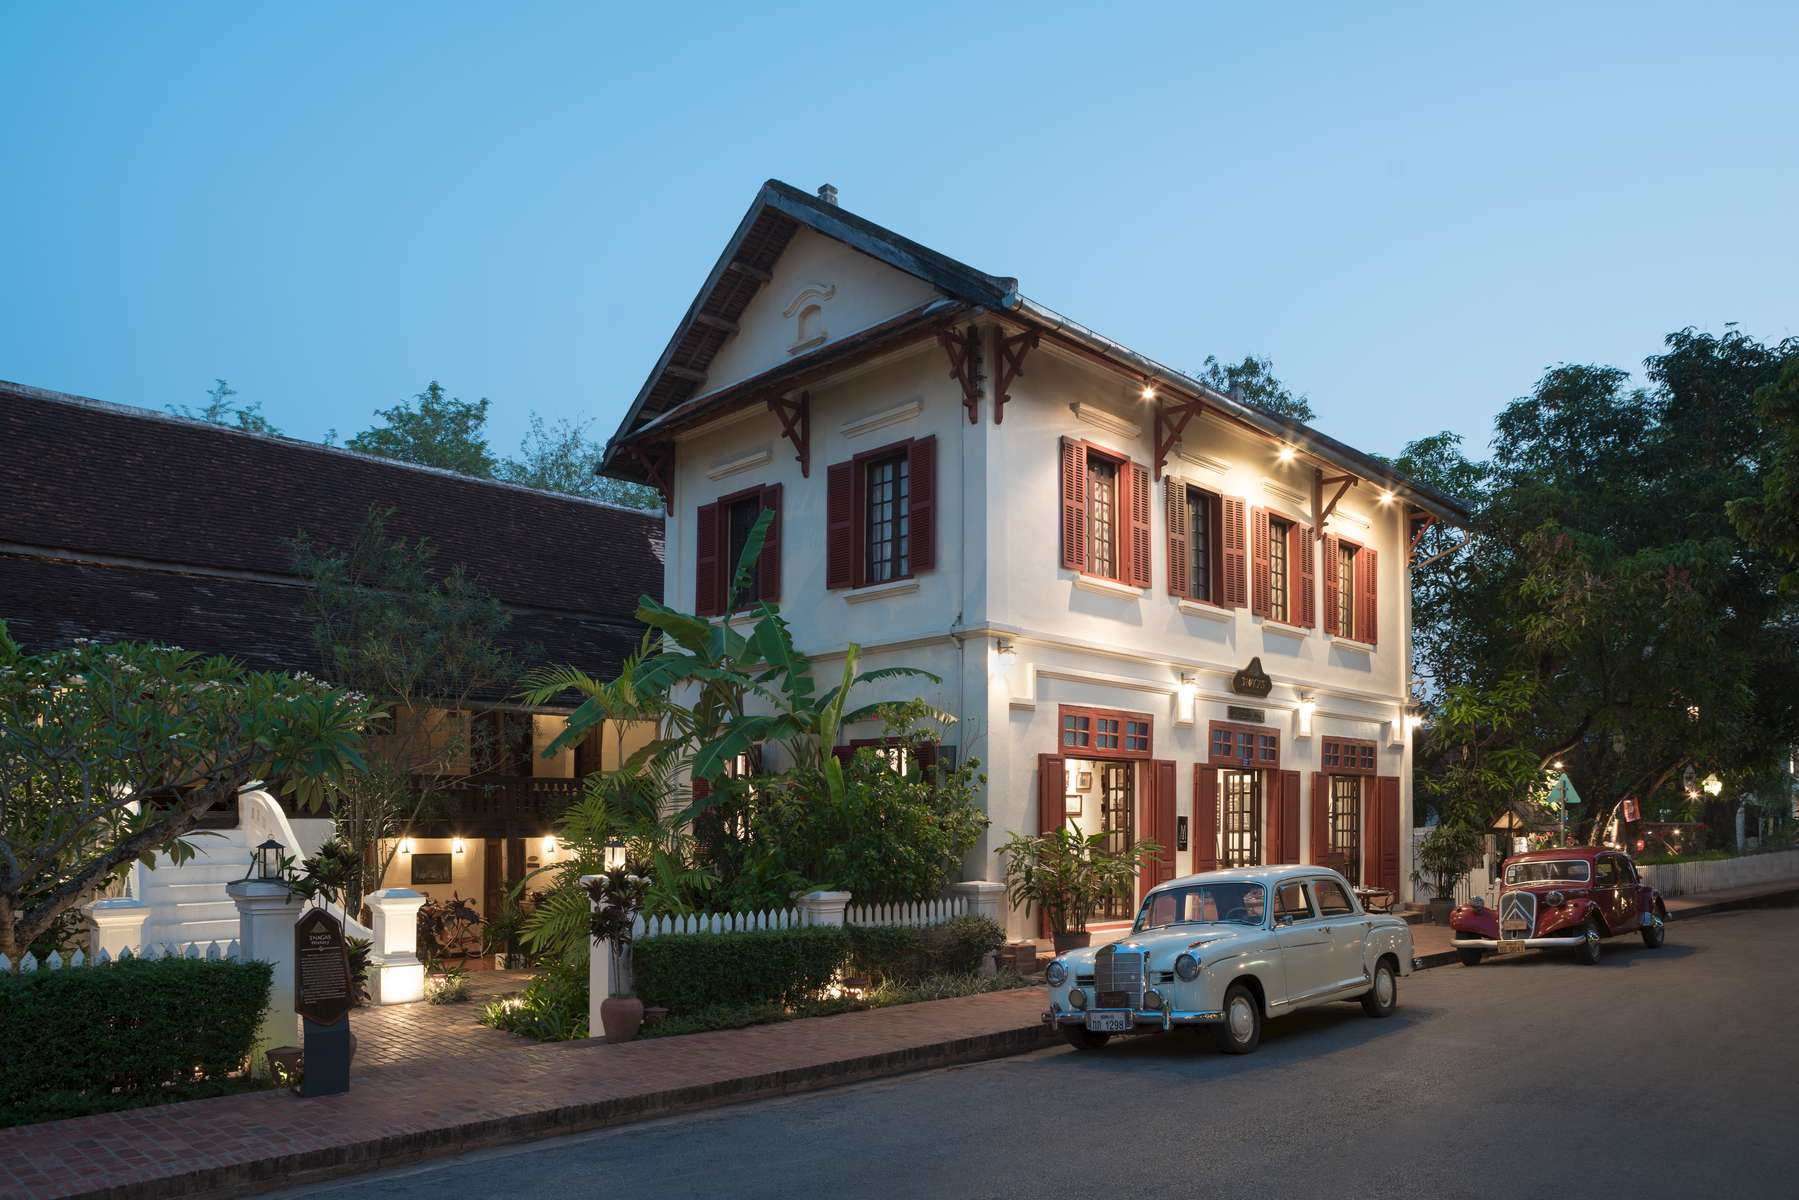 Laos-Luang-Prabang-Sofitel-M-Gallery-3-Nagas-9641-exterior-photo-by-Cyril-Eberle-DSC04514-Edit-1.jpg